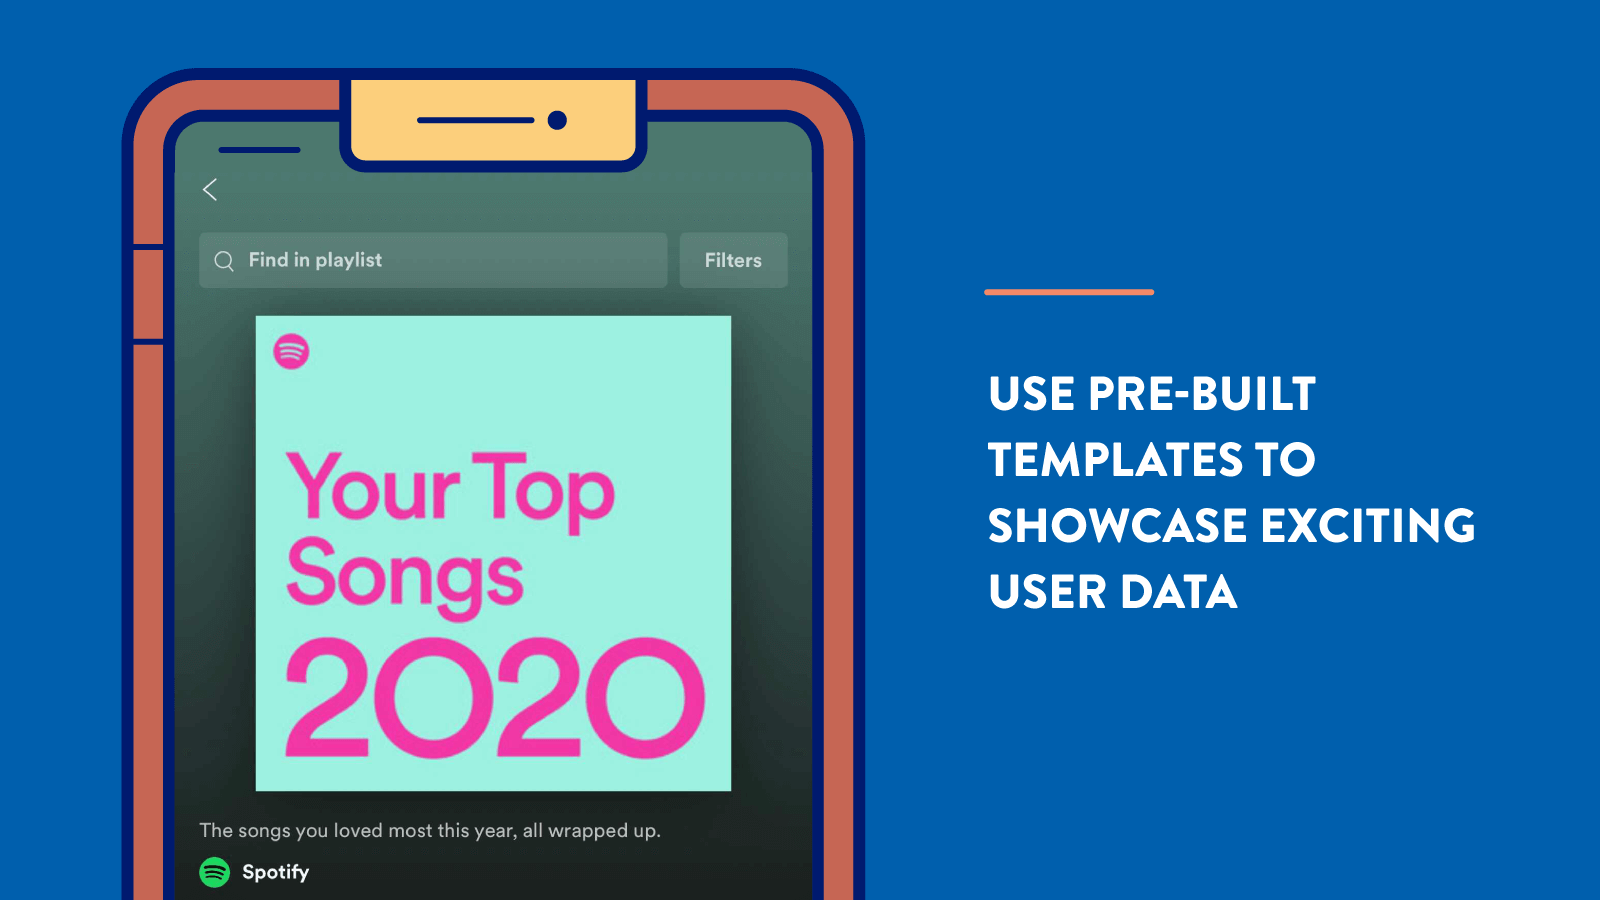 Personalization tip: Use Pre-Built Templates to Showcase Exciting User Data